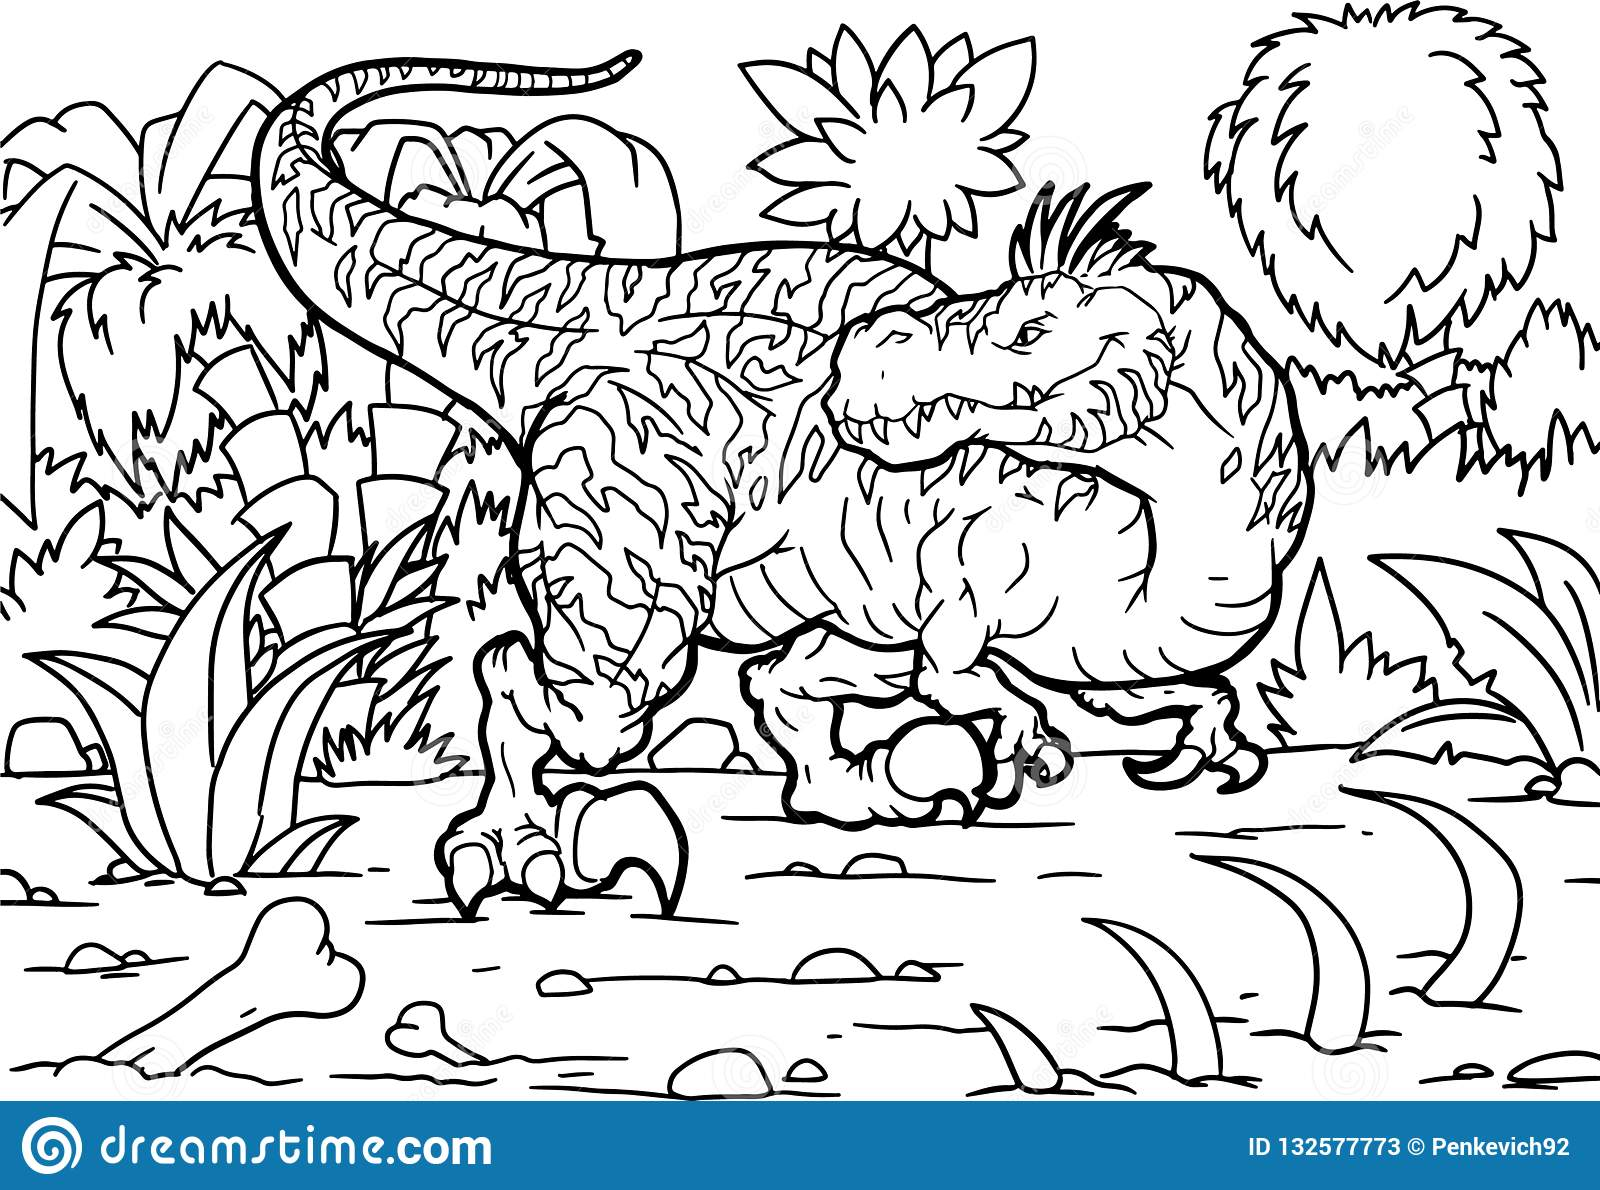 Coloring Book Velociraptor Dinosaur Coloring Stock Vector Illustration Of Cretaceous Isolated 132577773